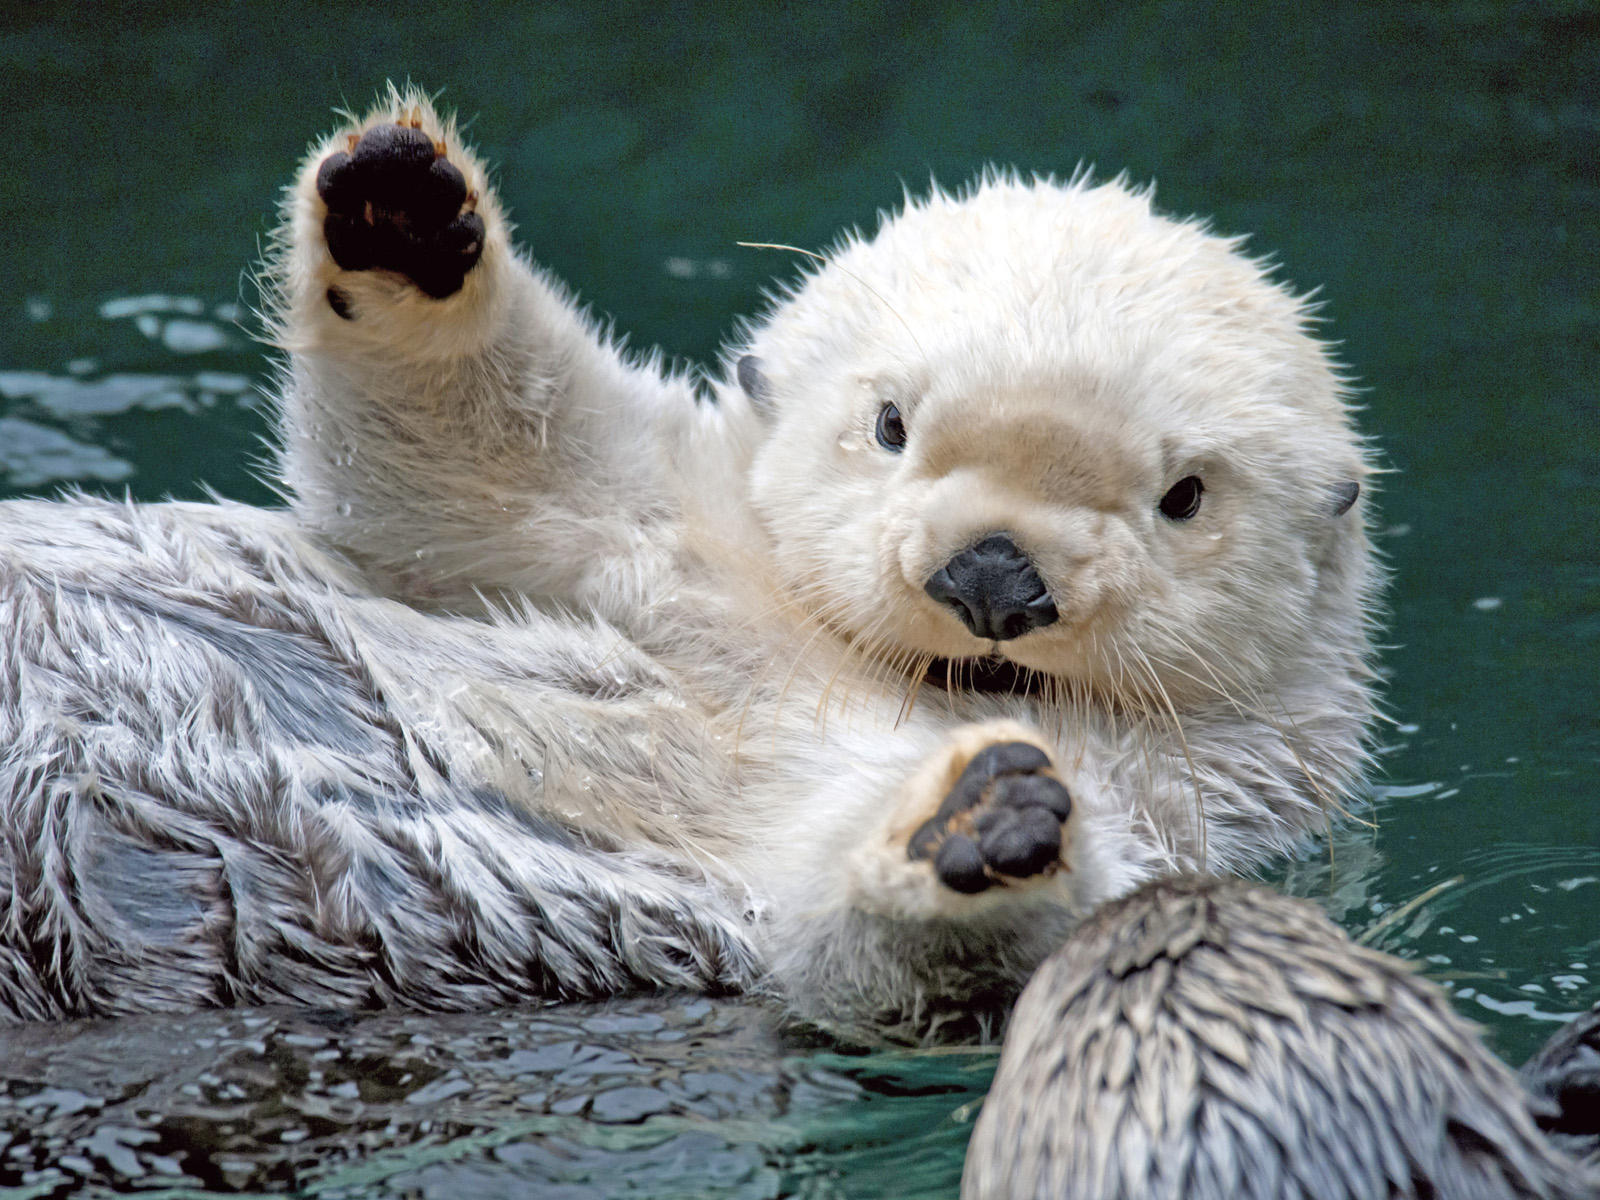 Funny Sea Otter Beautiful Photos 2012 - Pets Cute and Docile